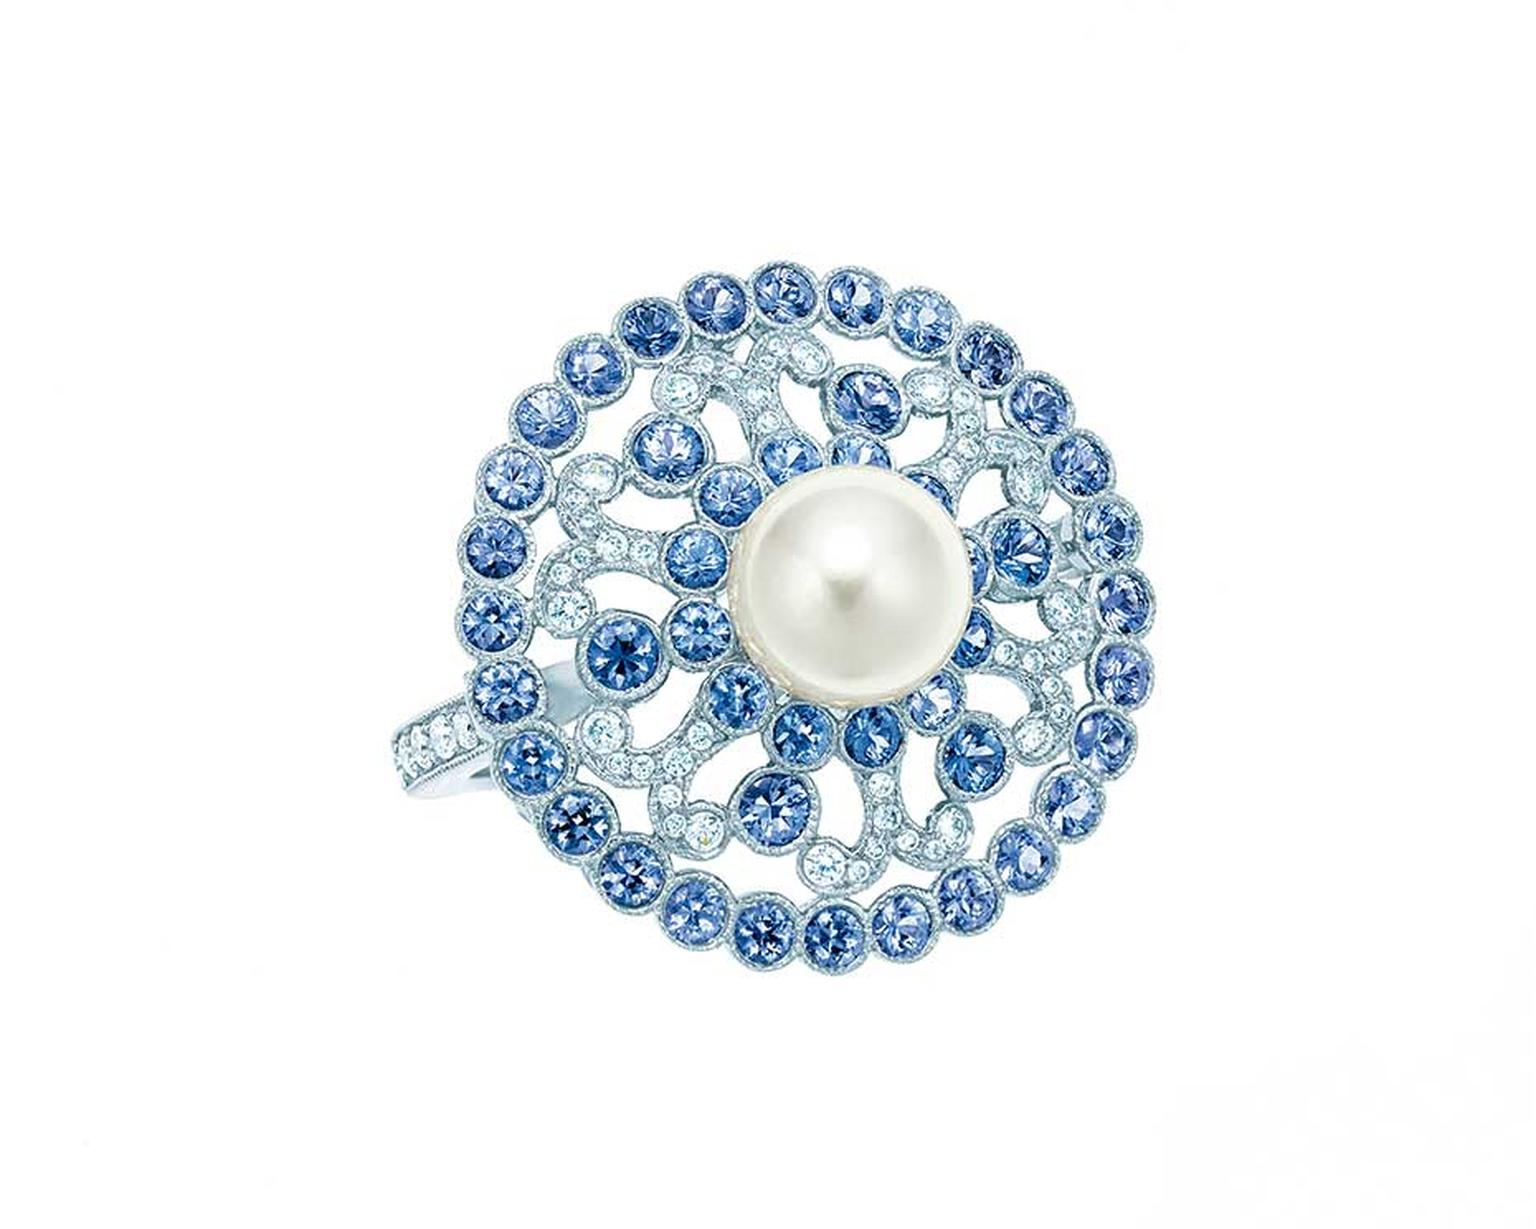 Tiffany & Co 2014 Blue Book collection ring with a central pearl surrounded by diamonds and sapphires